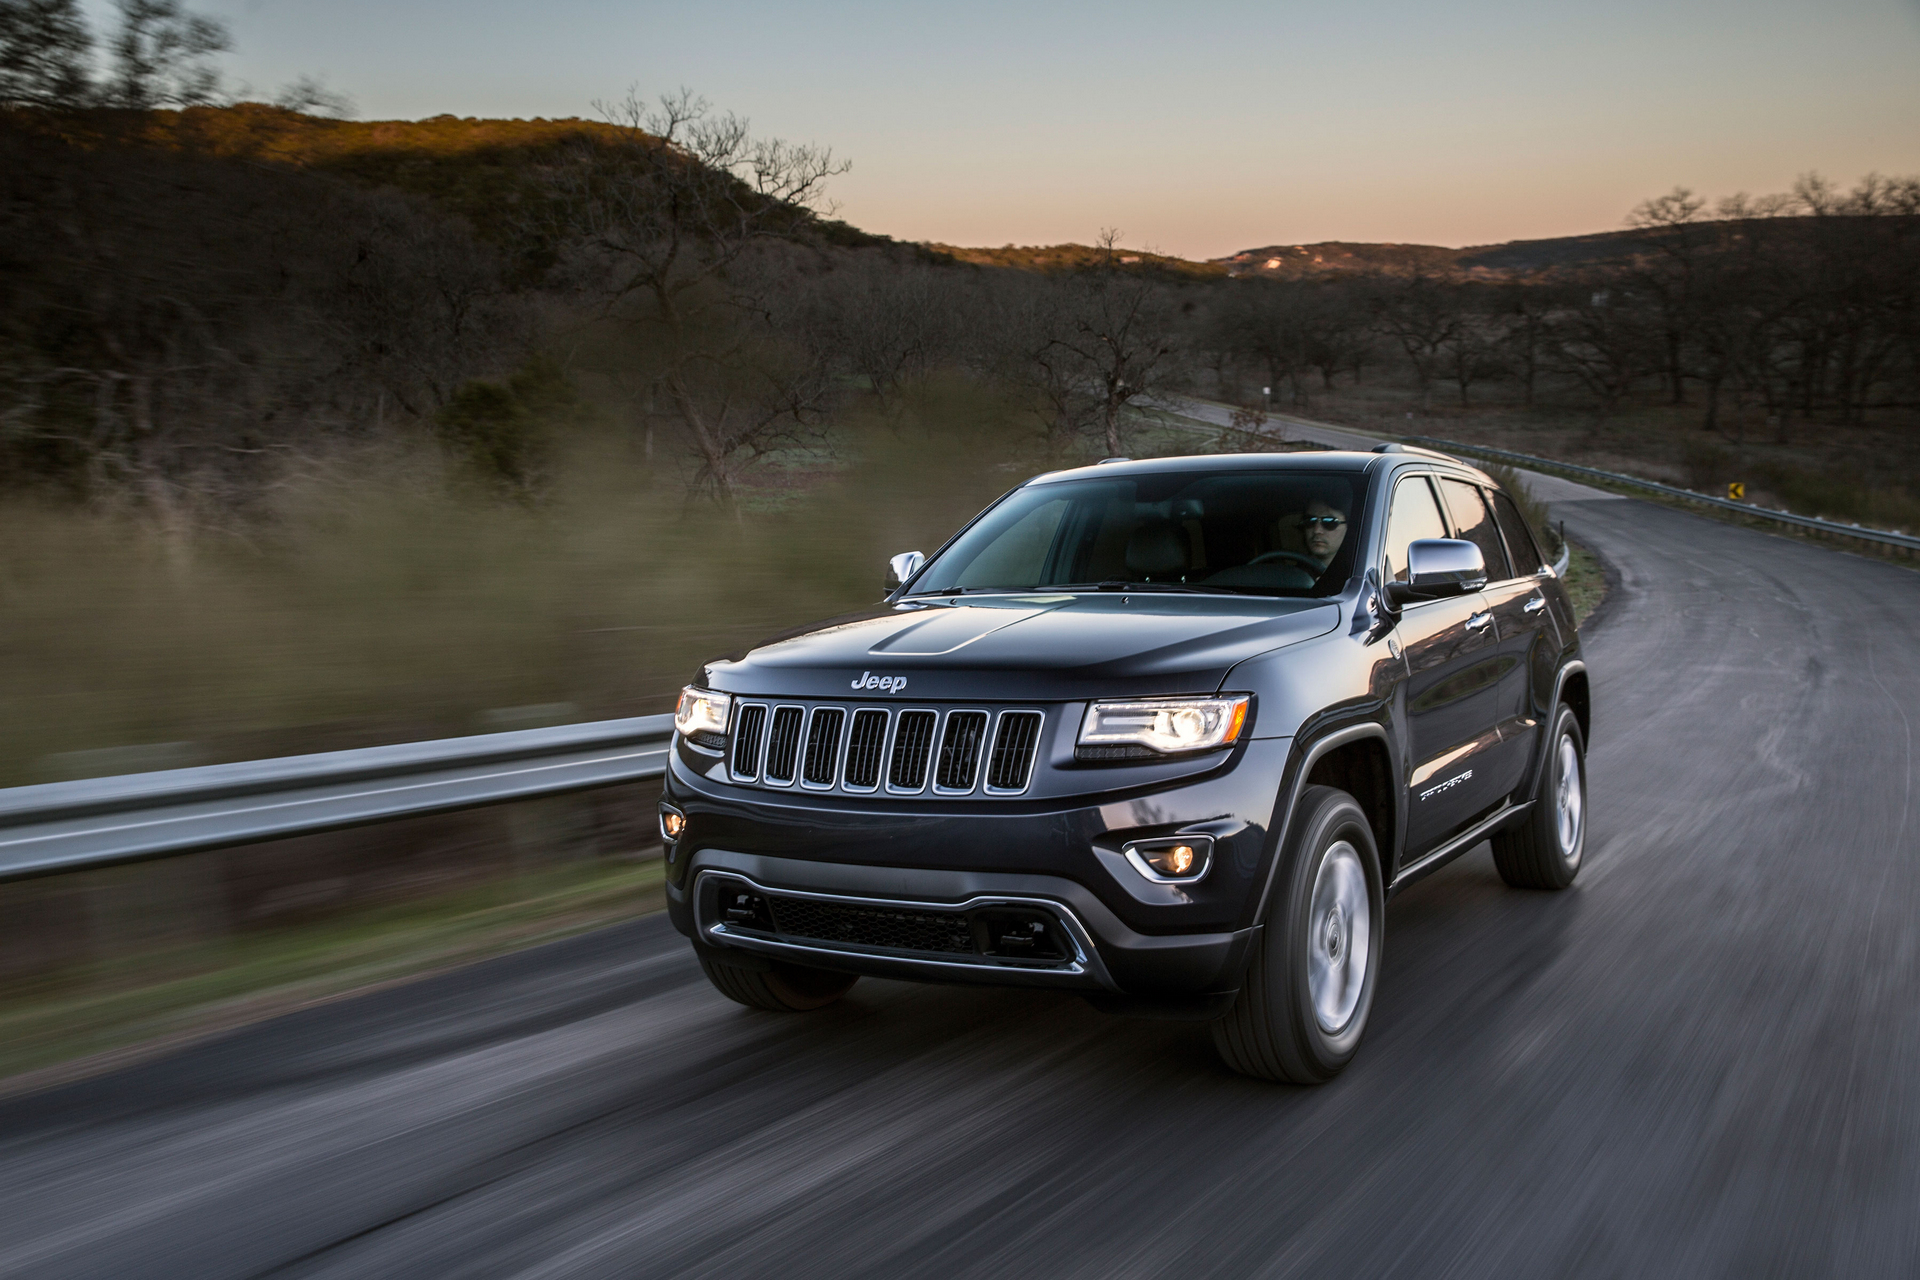 2016 Jeep Grand Cherokee Limited Fiat Chrysler Automobiles N V